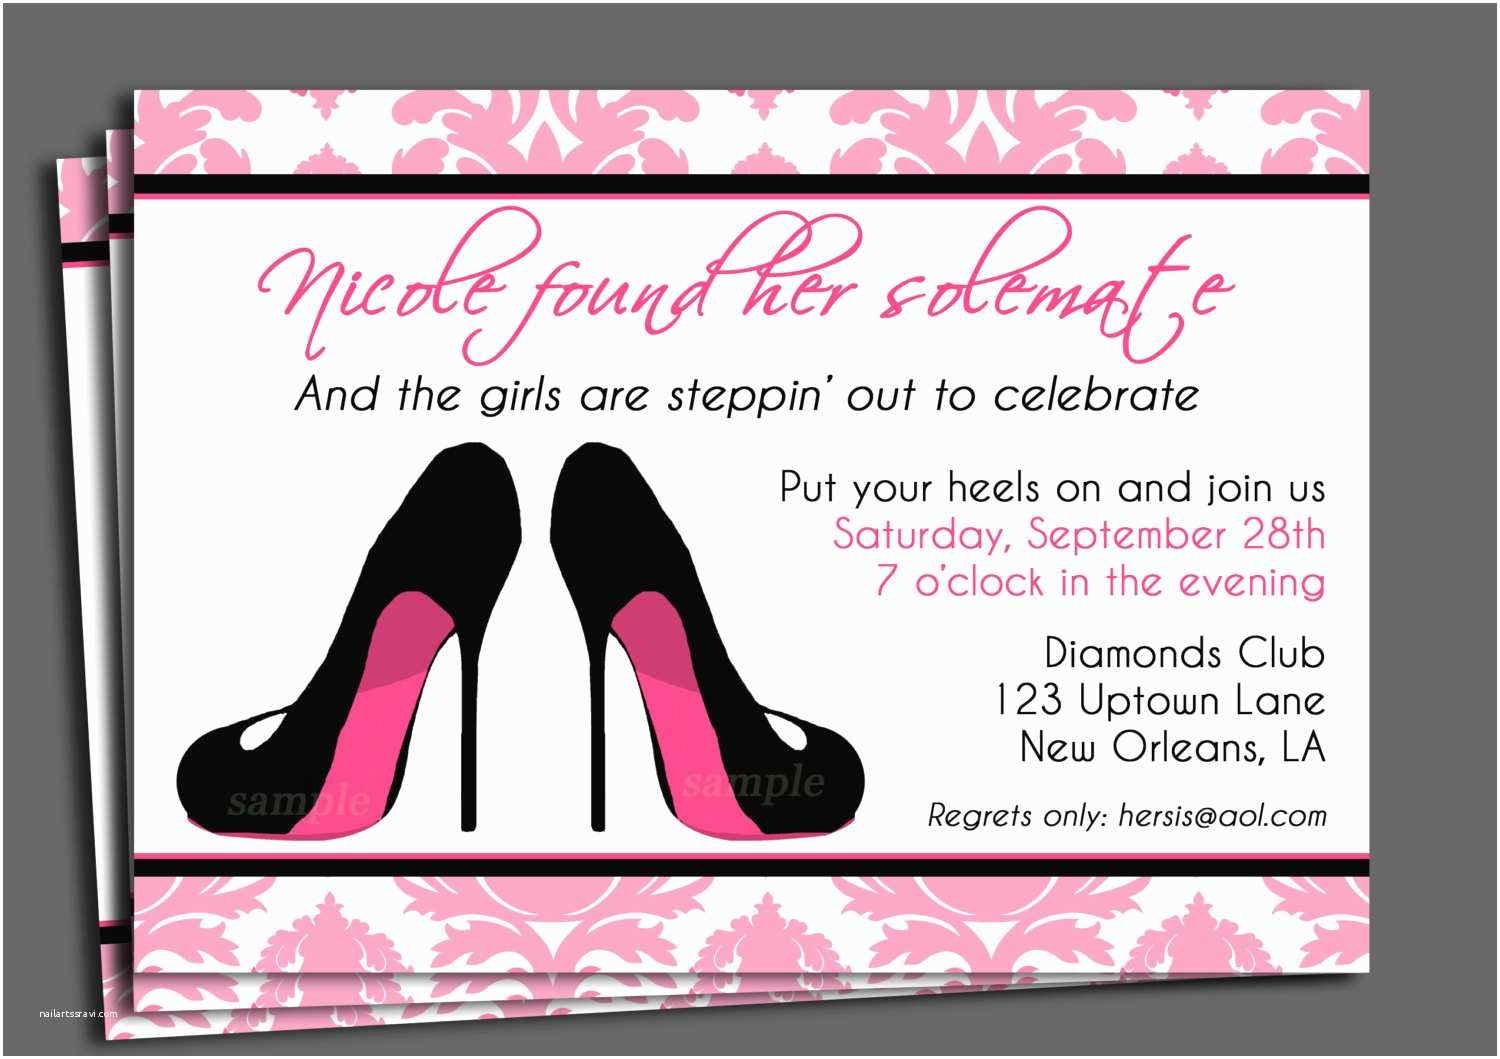 Invitation Wording for Adults Only Party Birthday Party Invitation Wording for Adults